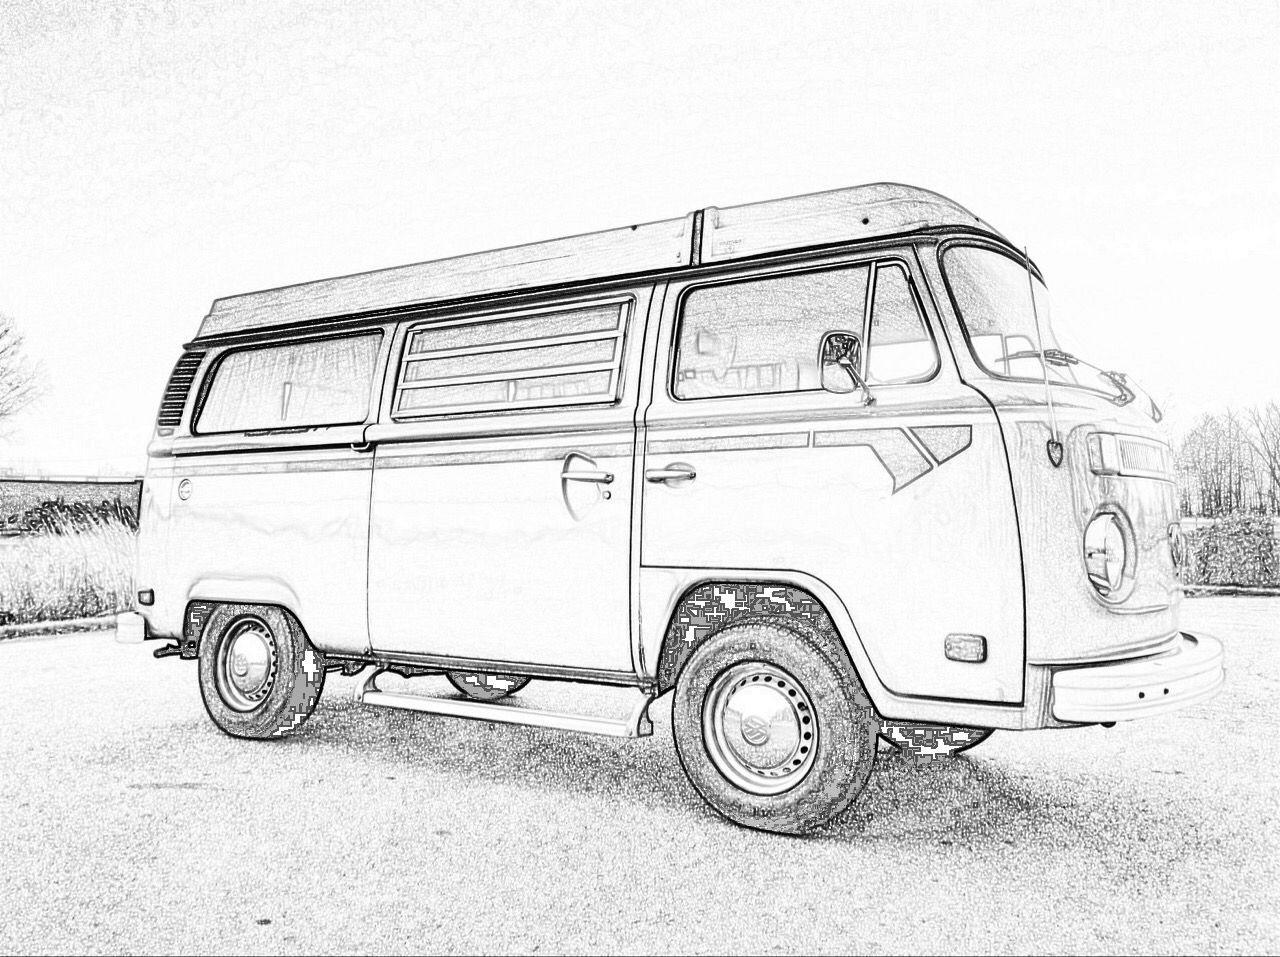 vw bus sketch vw camper van on behance vw camper camper drawing vw sketch vw bus